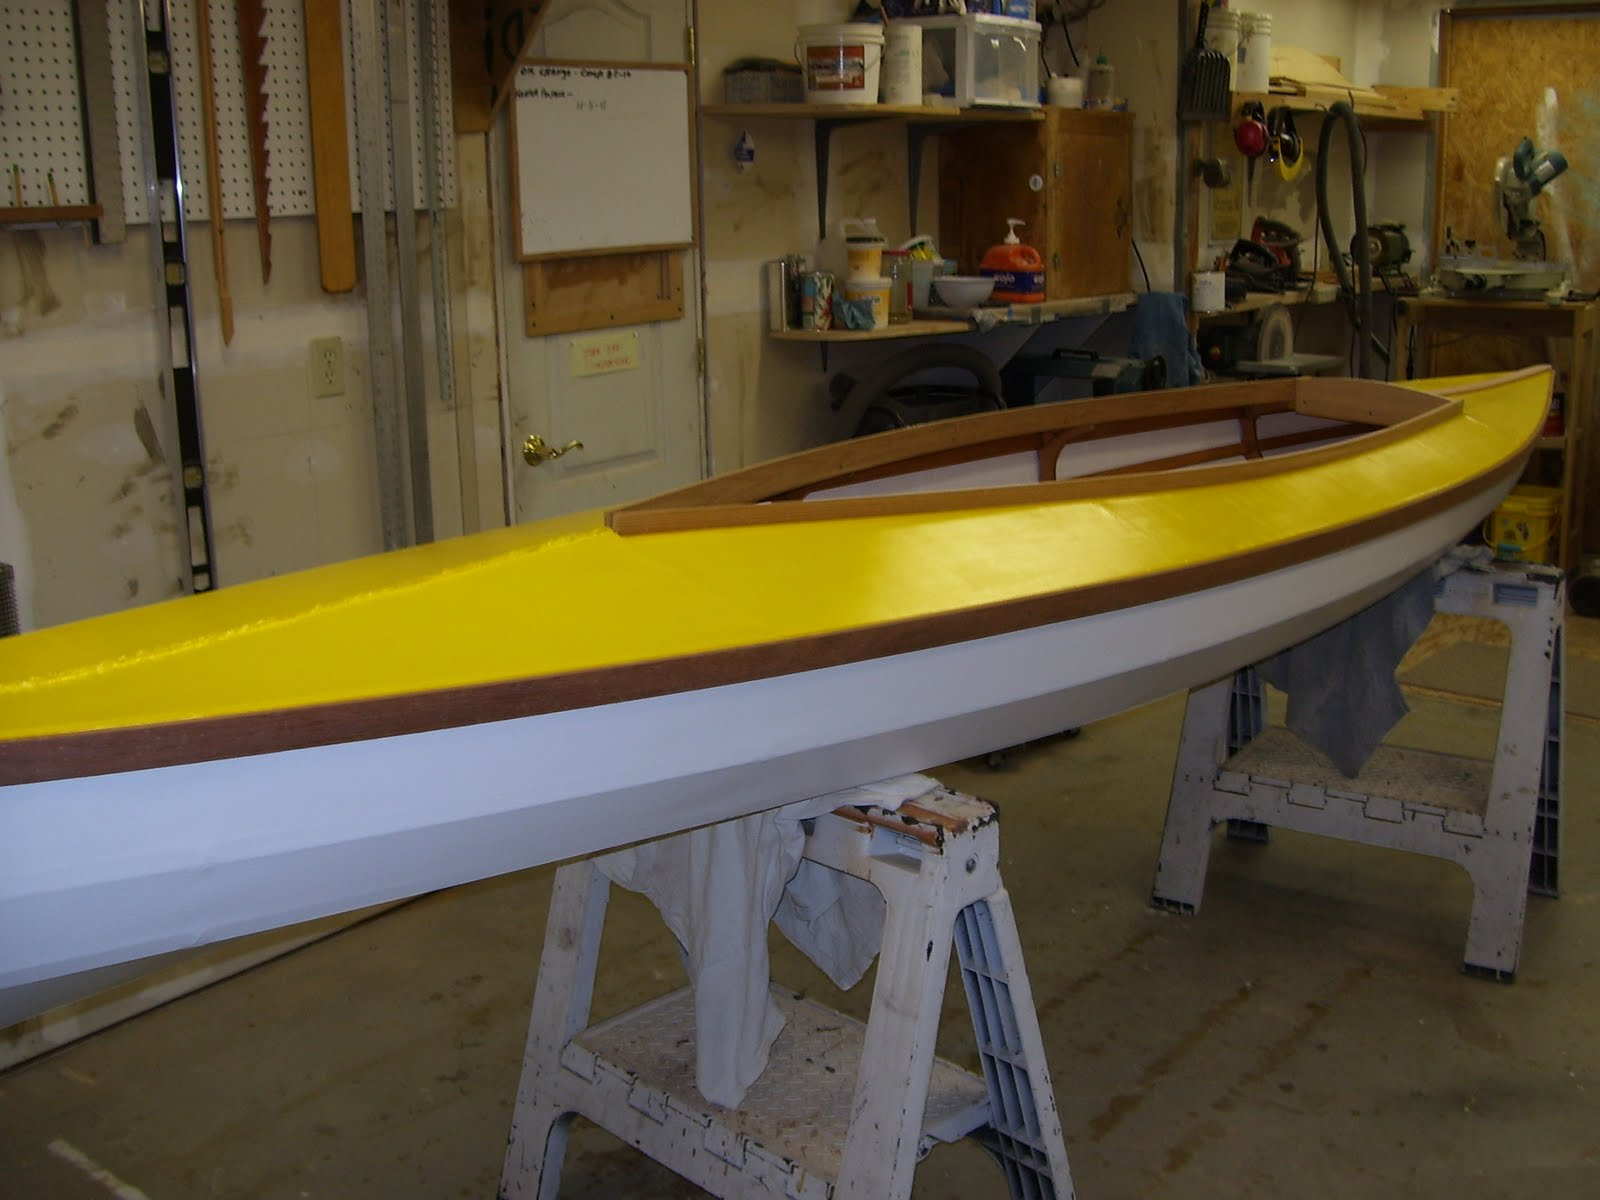 Skin on frame kayak plans - The Chuckanut 15 Is Multi Chined With A Wide Slight V Bottom For Stability Zero Rocker In The Keel For Solid Tracking And A Large Cockpit For Easy Entry